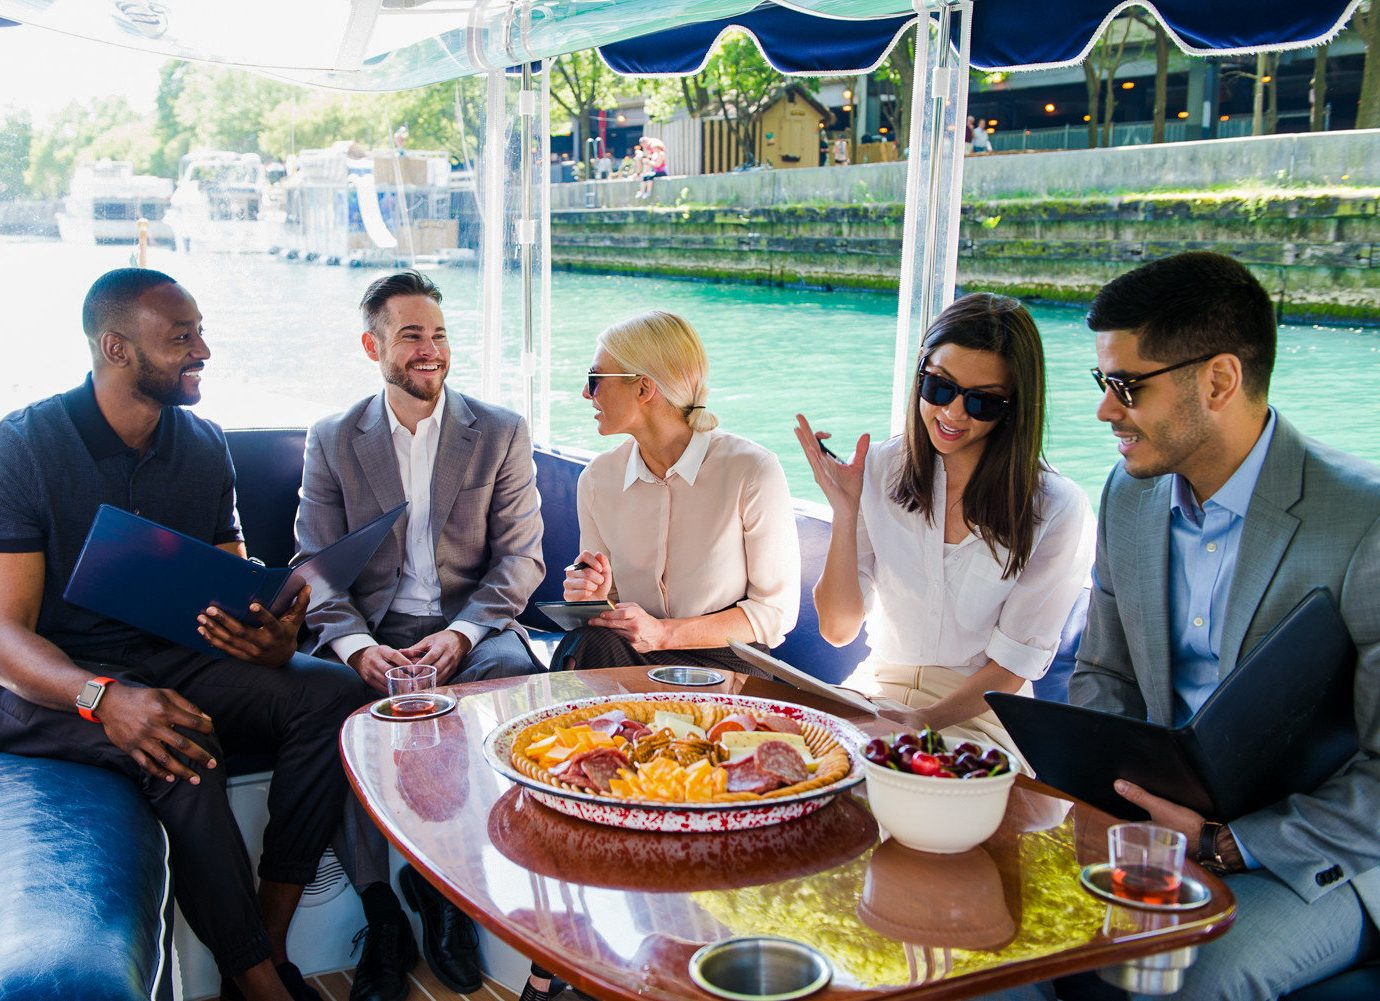 Trip Ideas person meal food cuisine lunch dish fun tourism recreation people vacation leisure water brunch